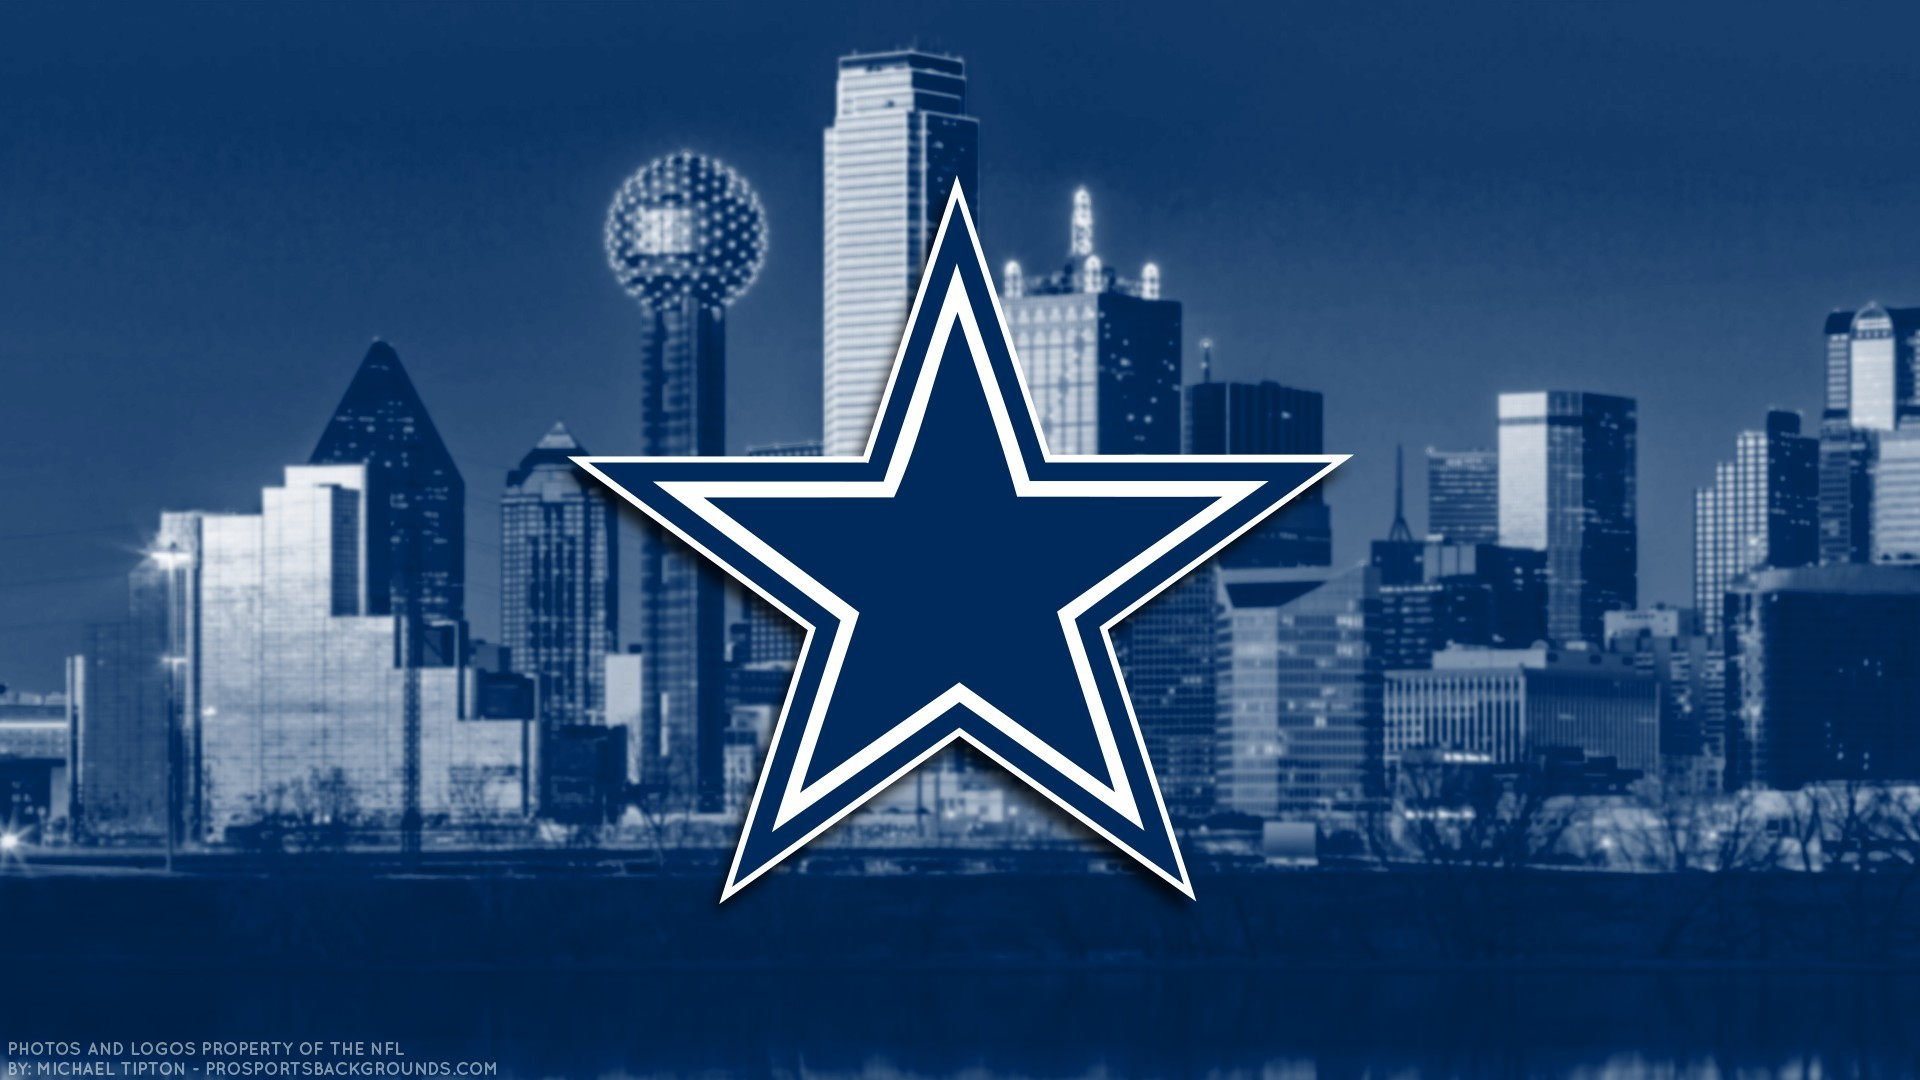 Dallas cowboys 2018 wallpapers 55 images 1920x1080 1920x1080 beautiful dallas cowboys wallpaper 1920x1080 for tablet voltagebd Gallery